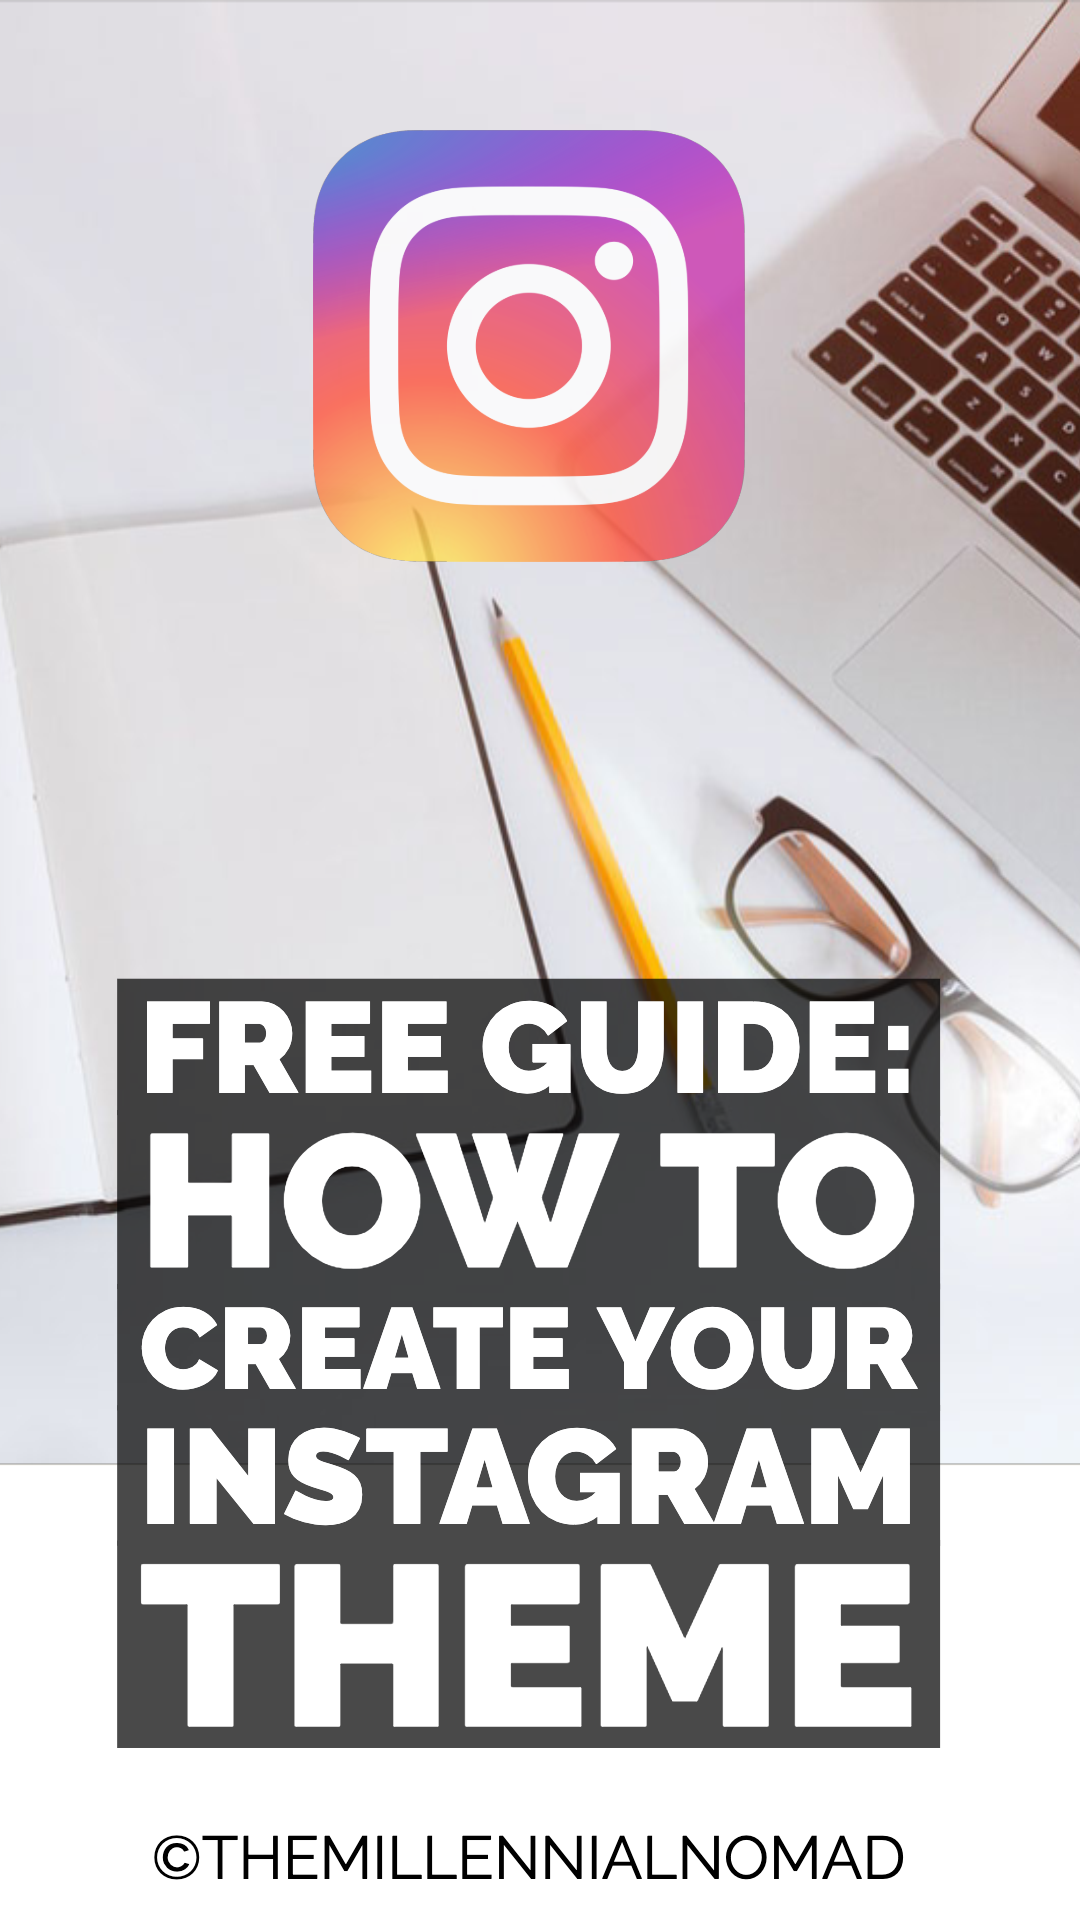 Check out this Free guide to help you create and plan your Instagram feed like a pro. This will help you gain more engagement  and potentially brand sponsorship deals. #instagrammarketing #instagramforbusiness #instagramfeed #instagramtips #instagraminfluencer